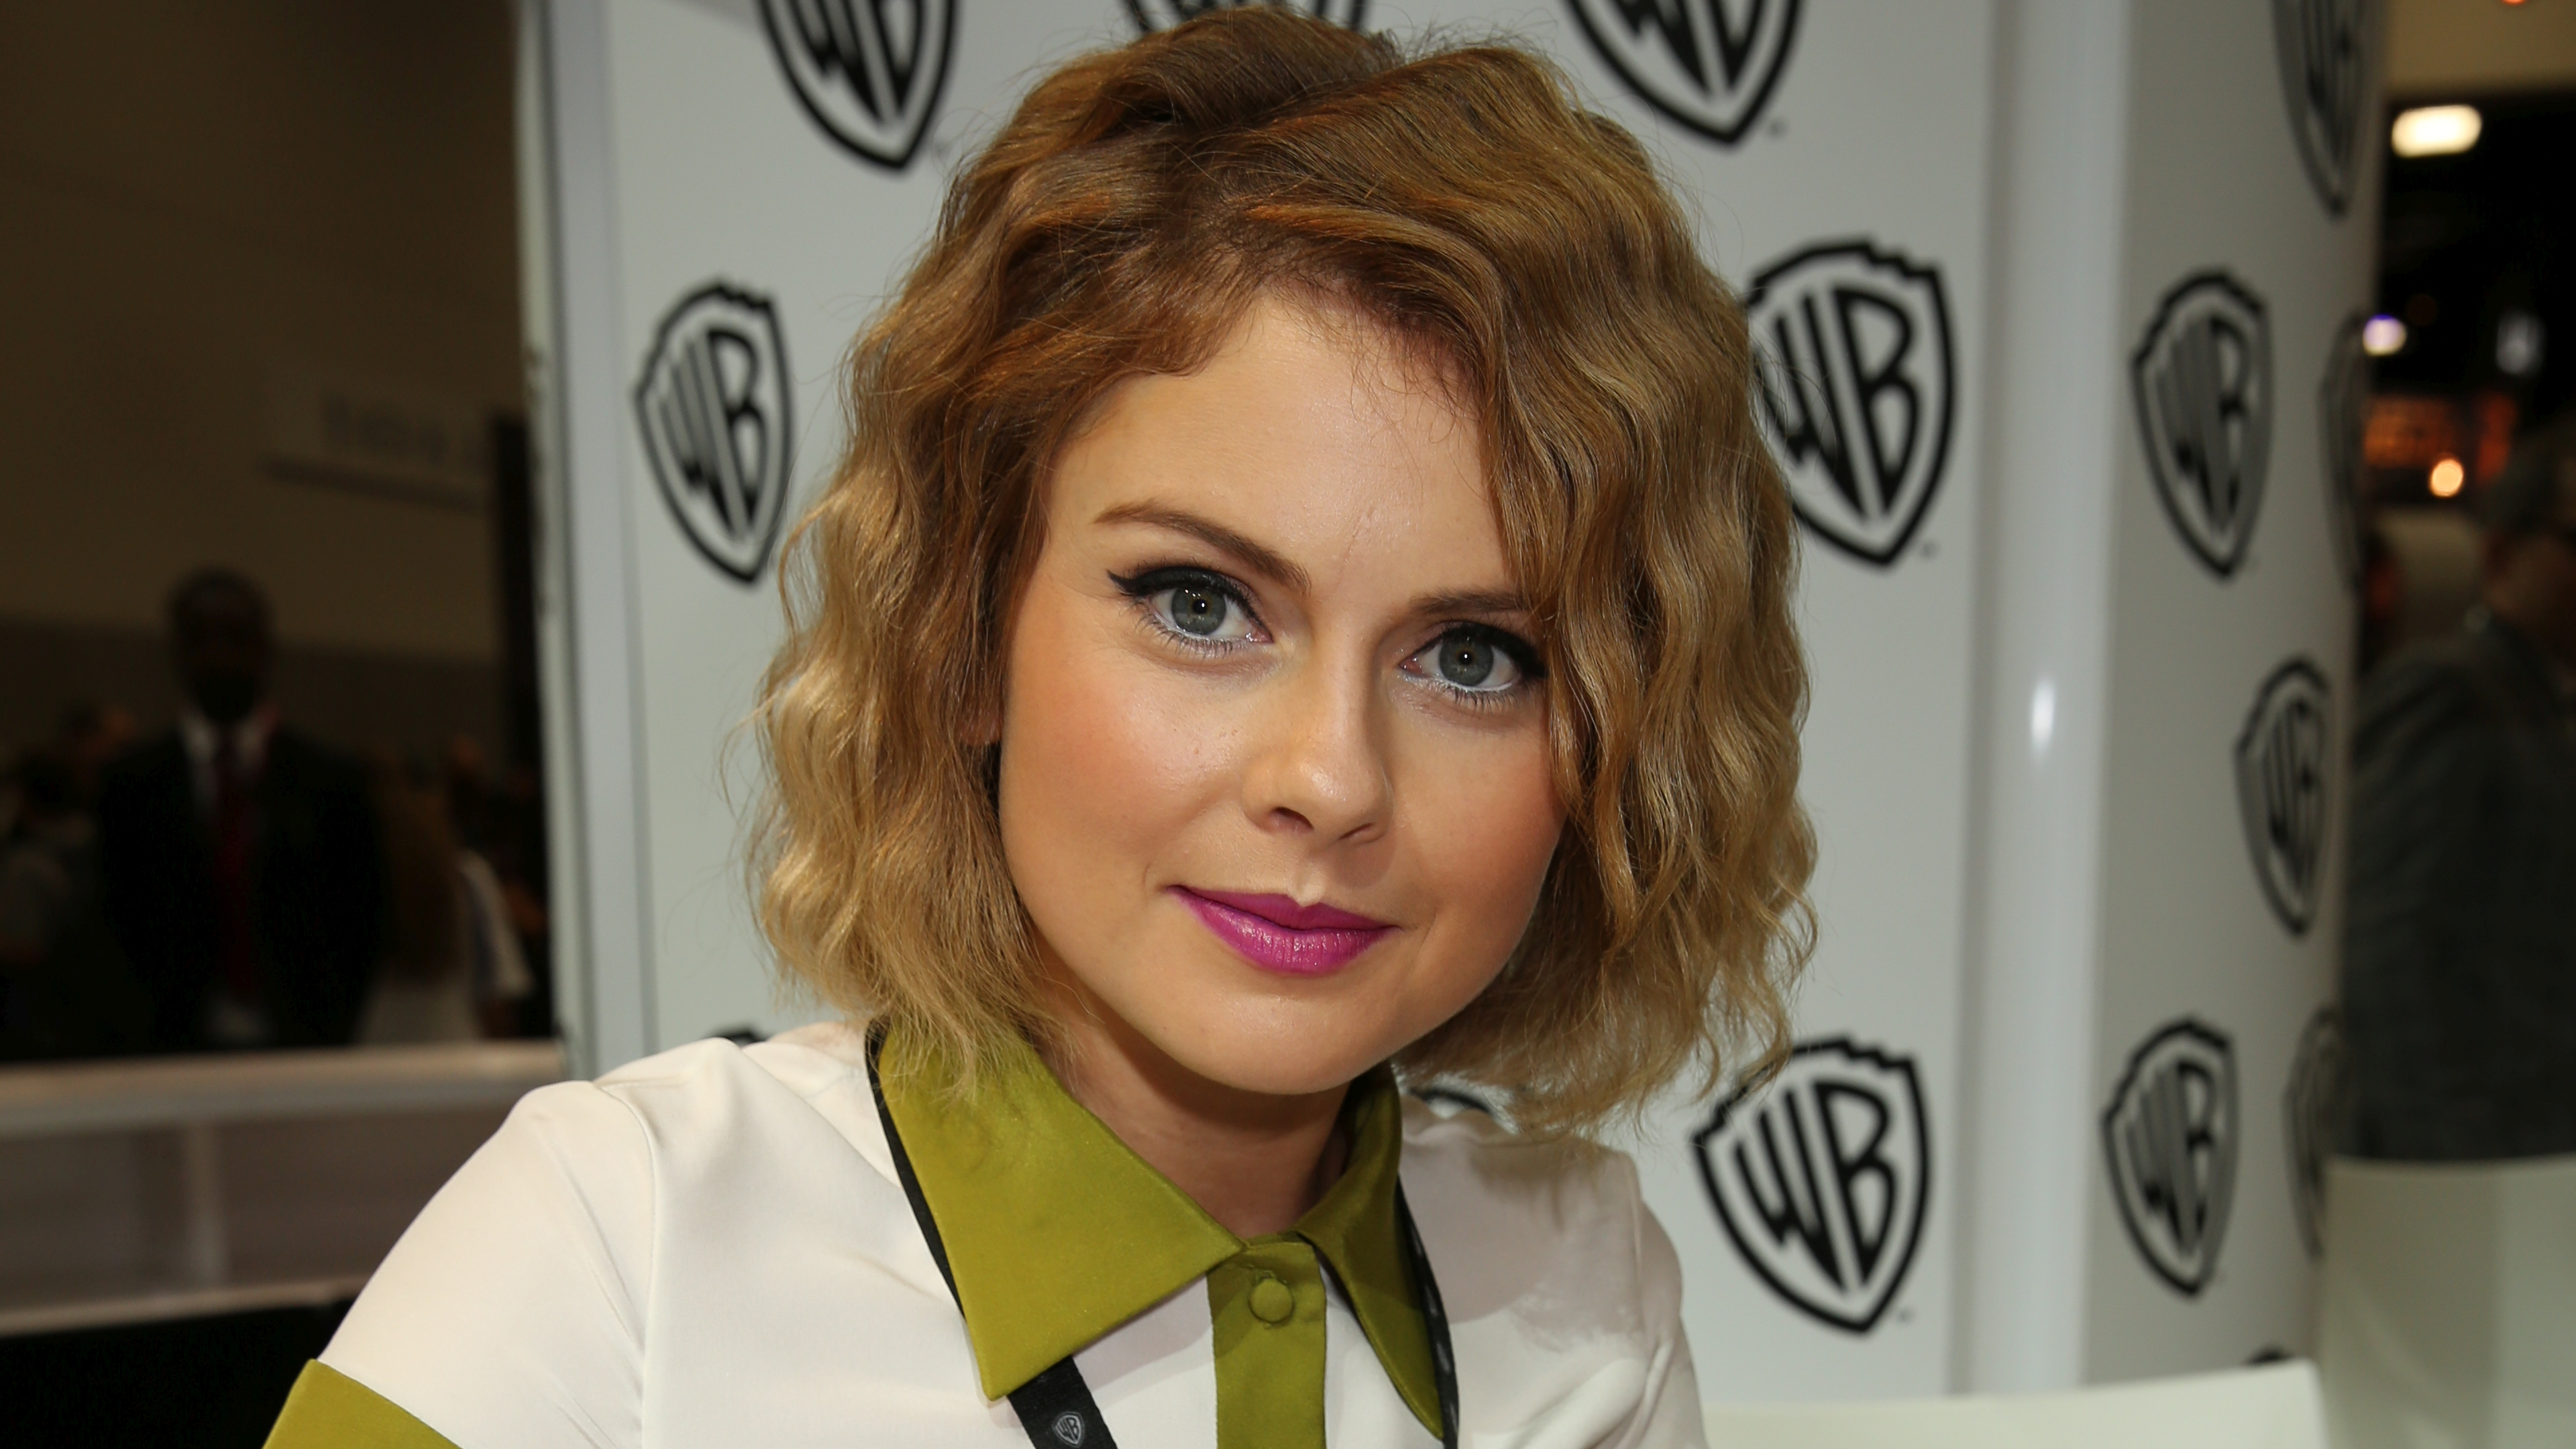 3840x2160 - Rose McIver Wallpapers 16